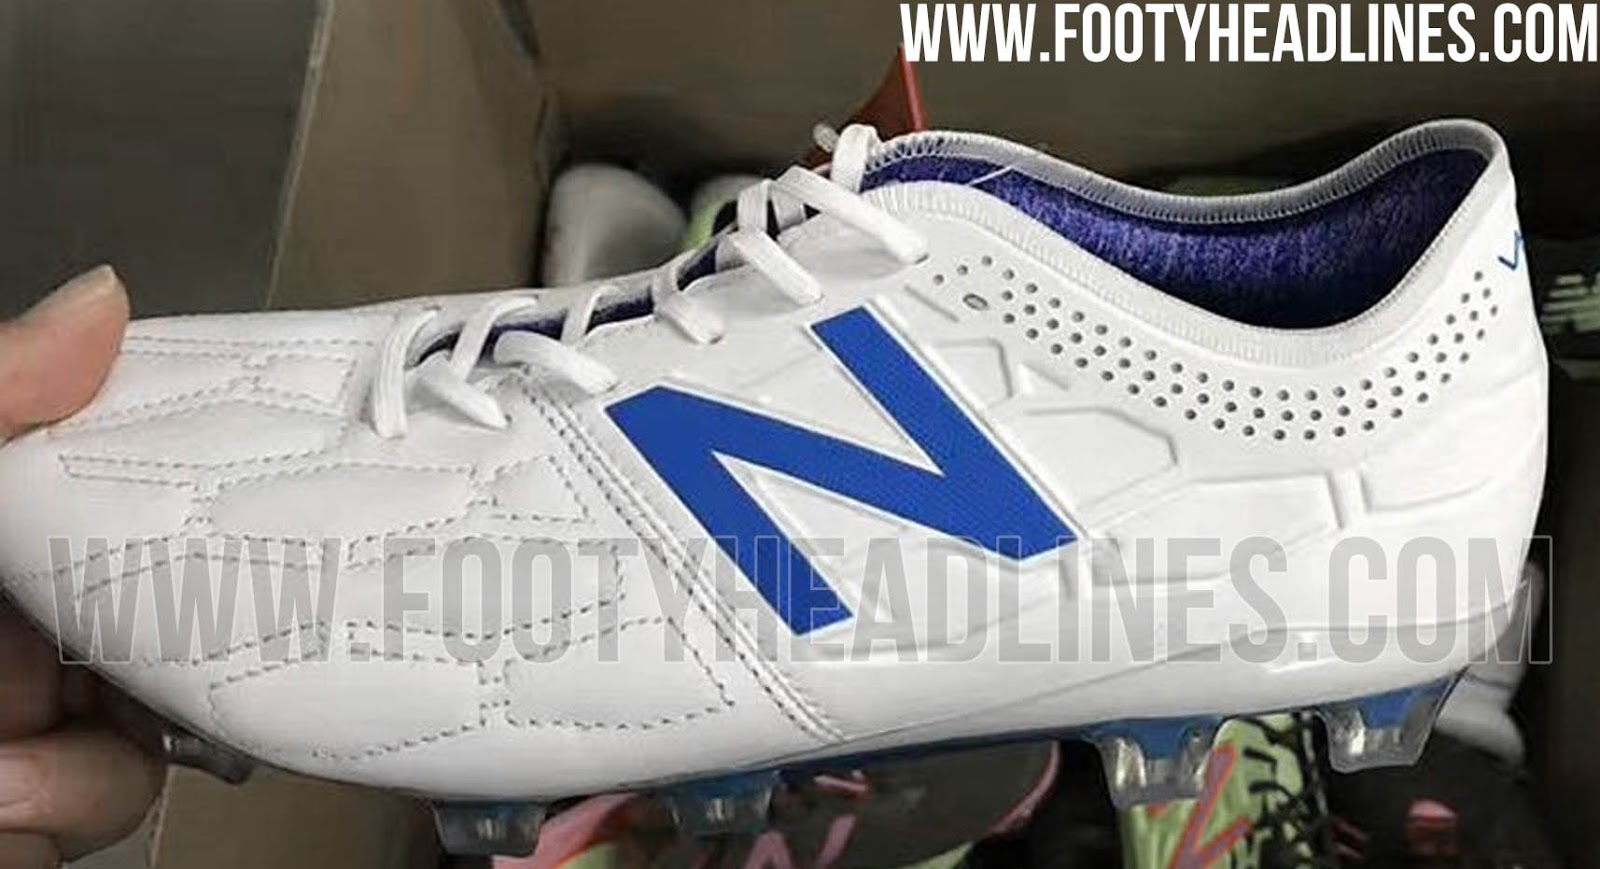 303be96357087 promo code for blue new balance boots b350a 819b1